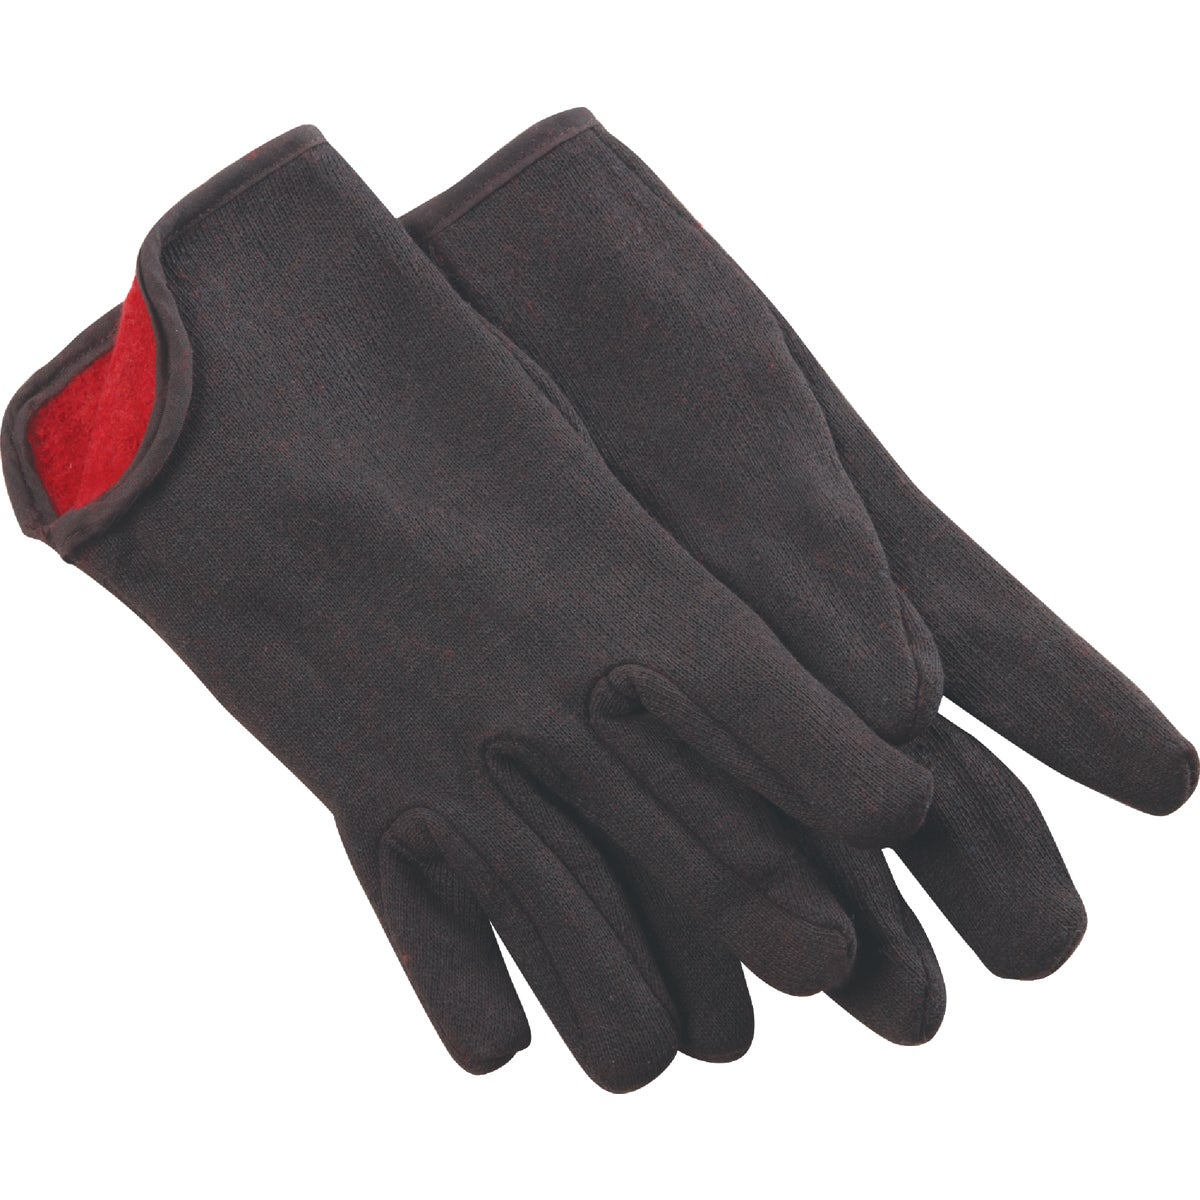 LRG JERSEY LINED GLOVE - 708416 by Do it Best